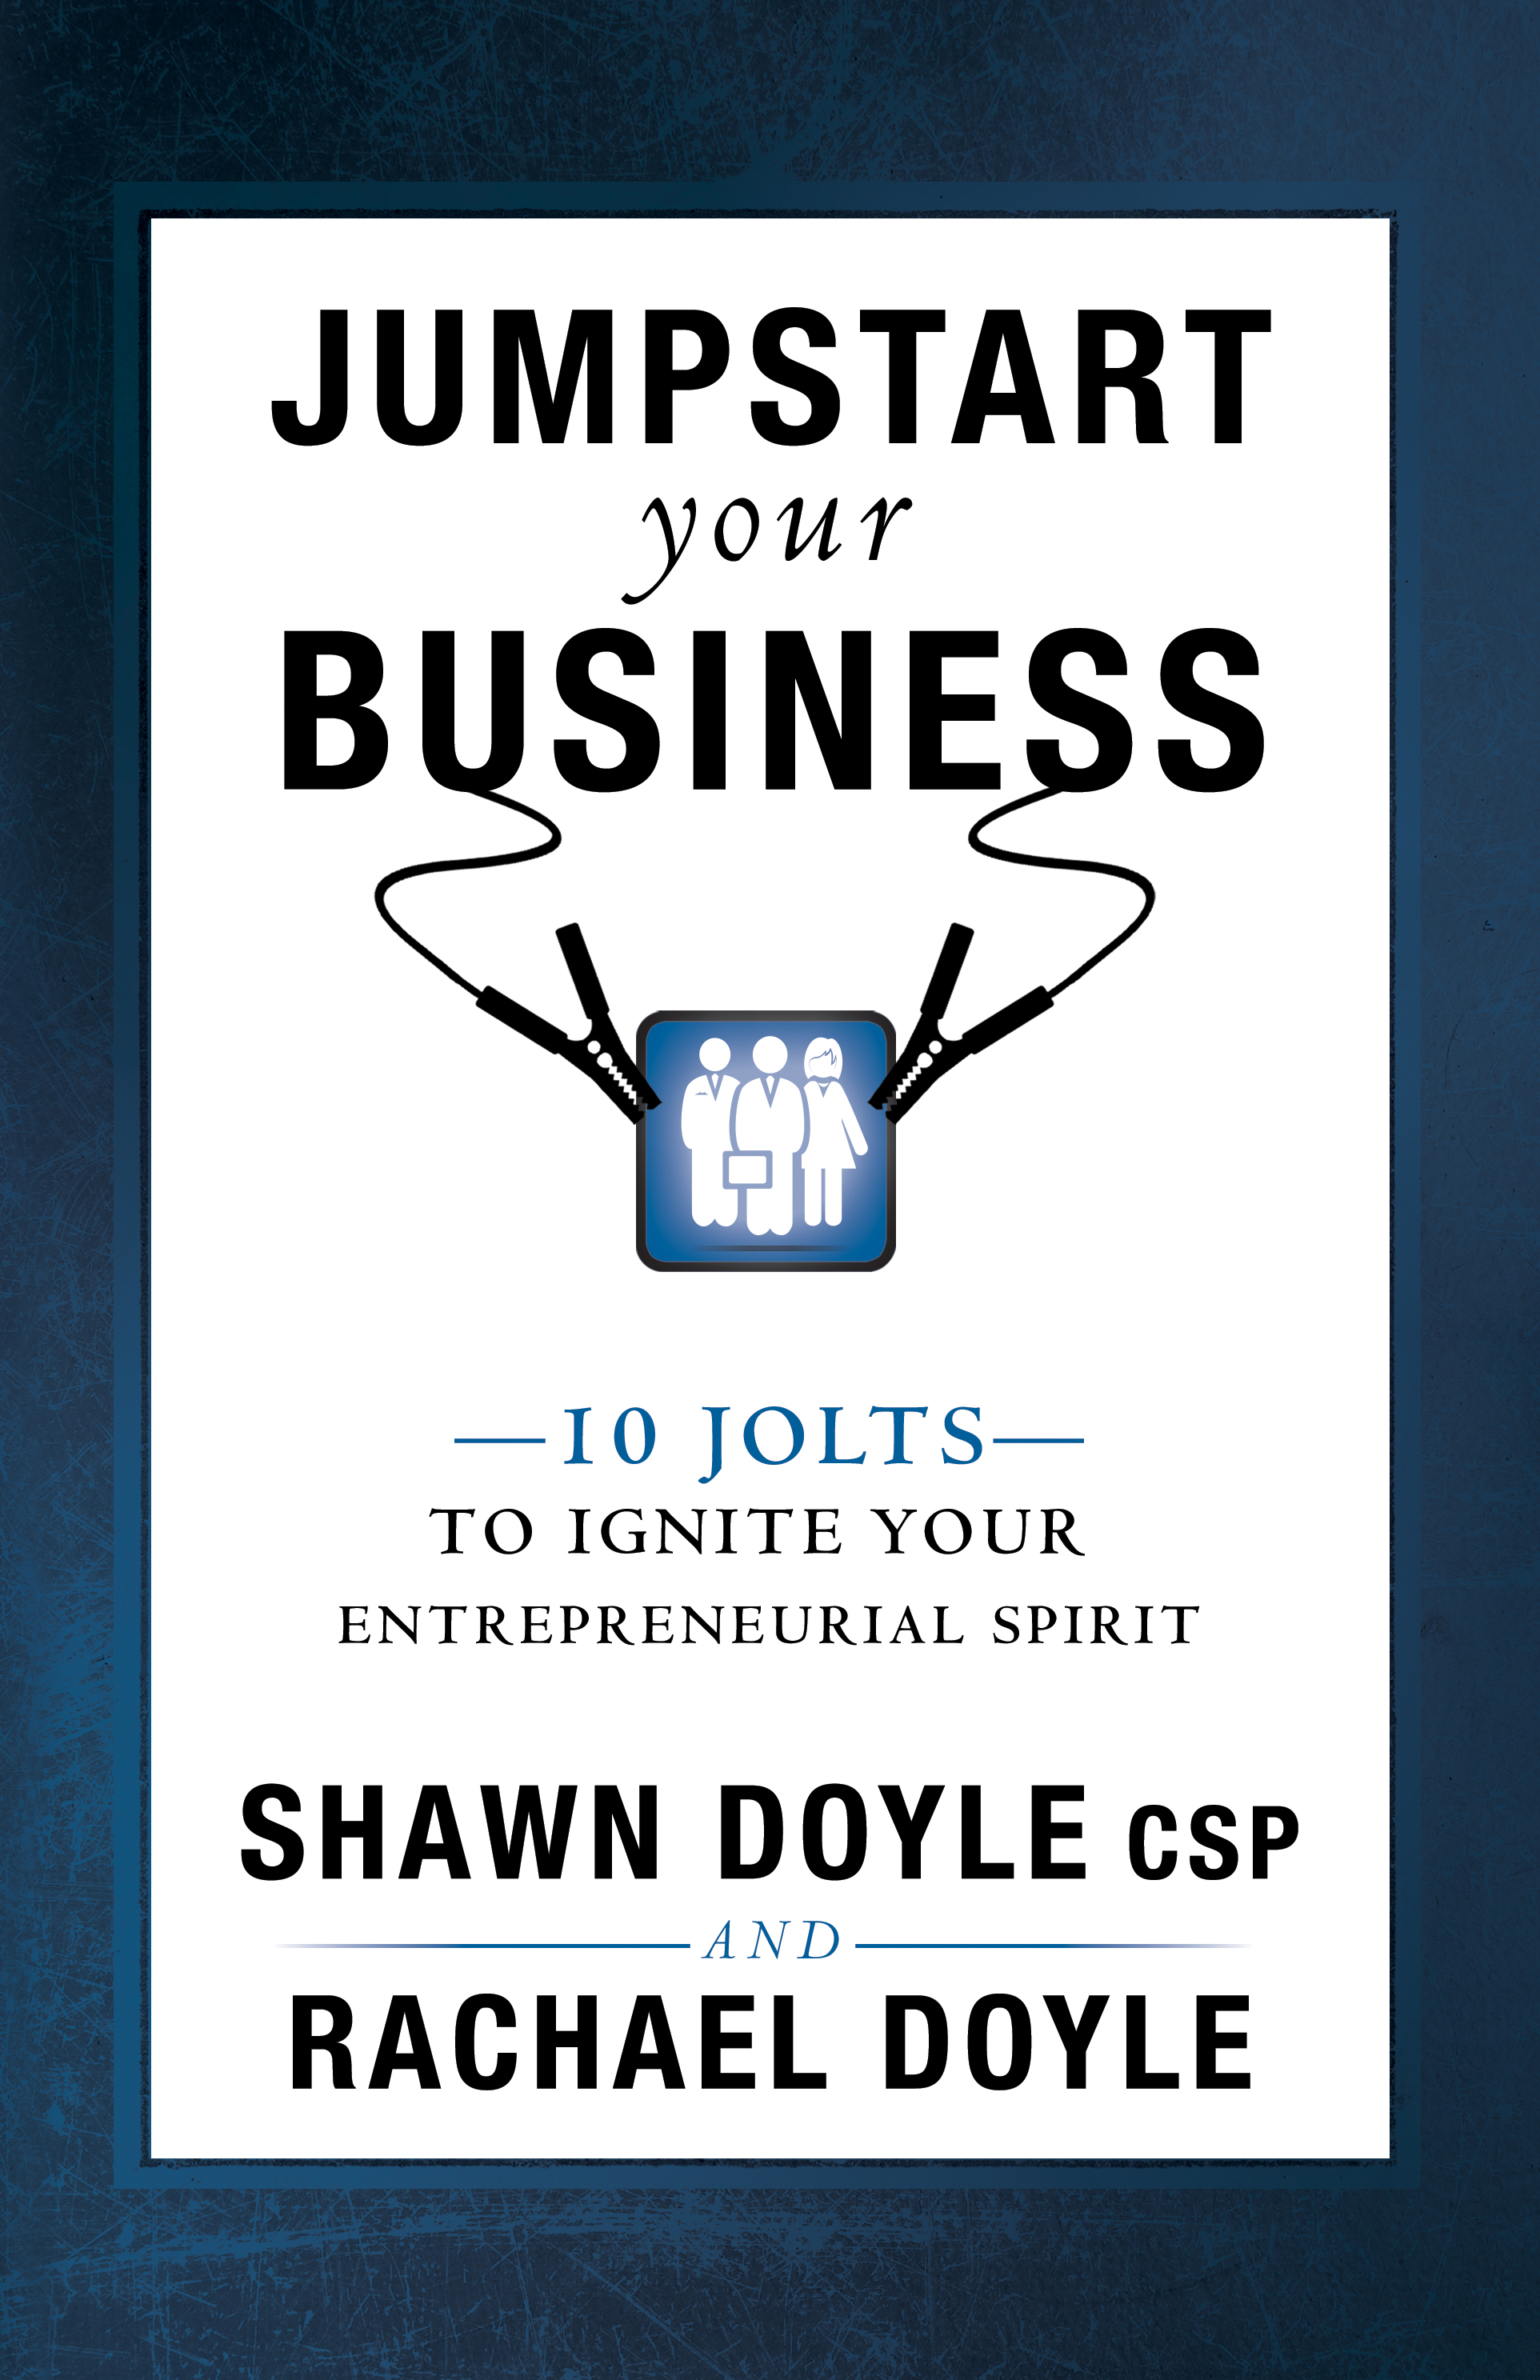 Jumpstart Your Business - Shawn Doyle CSP and Rachael Doyle